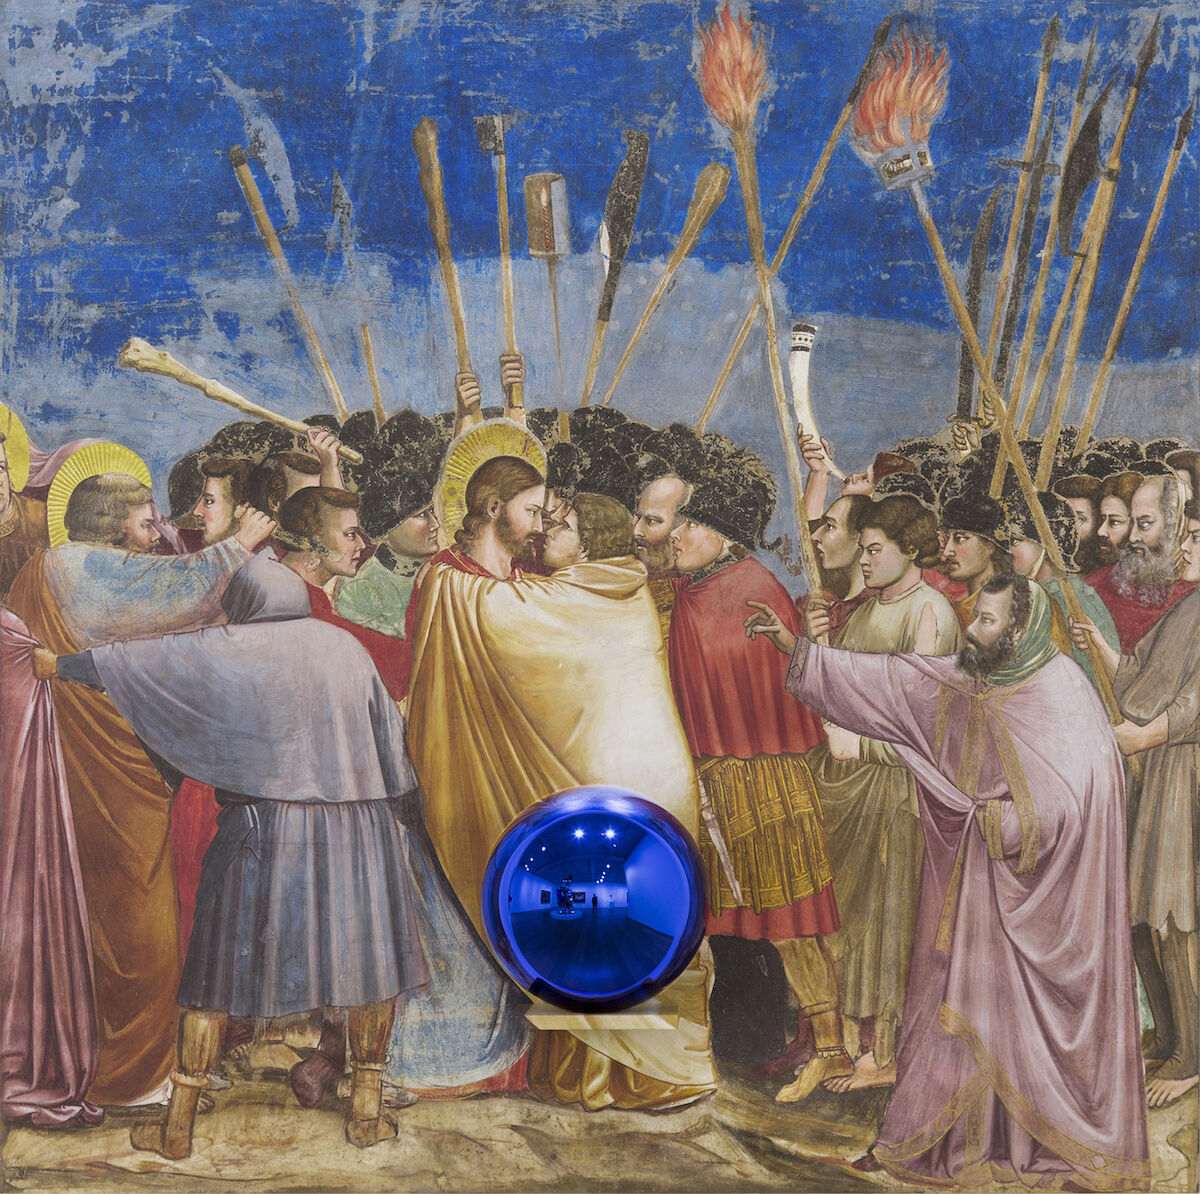 Jeff Koons, Gazing Ball (Giotto The Kiss of Judas), 2015-2016. © Jeff Koons. Courtesy David Zwirner, New York.